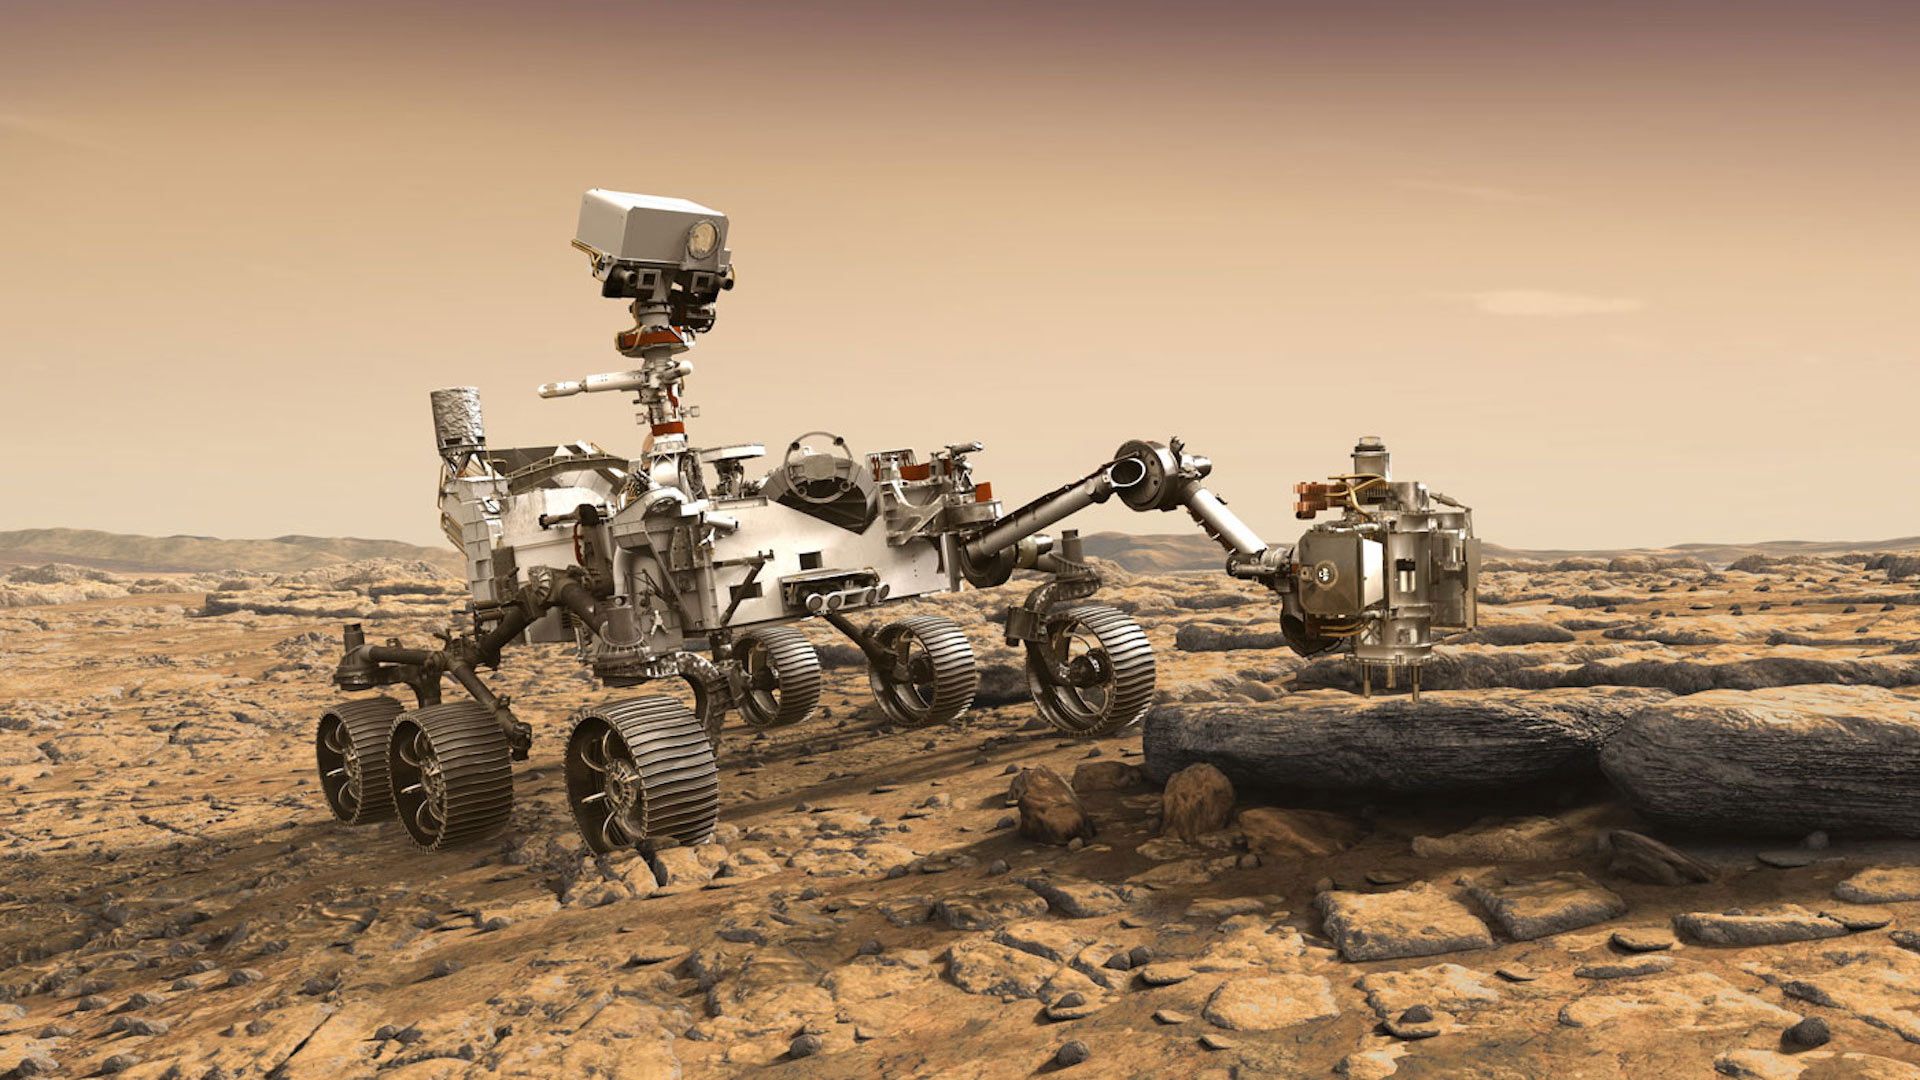 The Mars 2020 rover is among the planetary explorers set to make news in 2021.